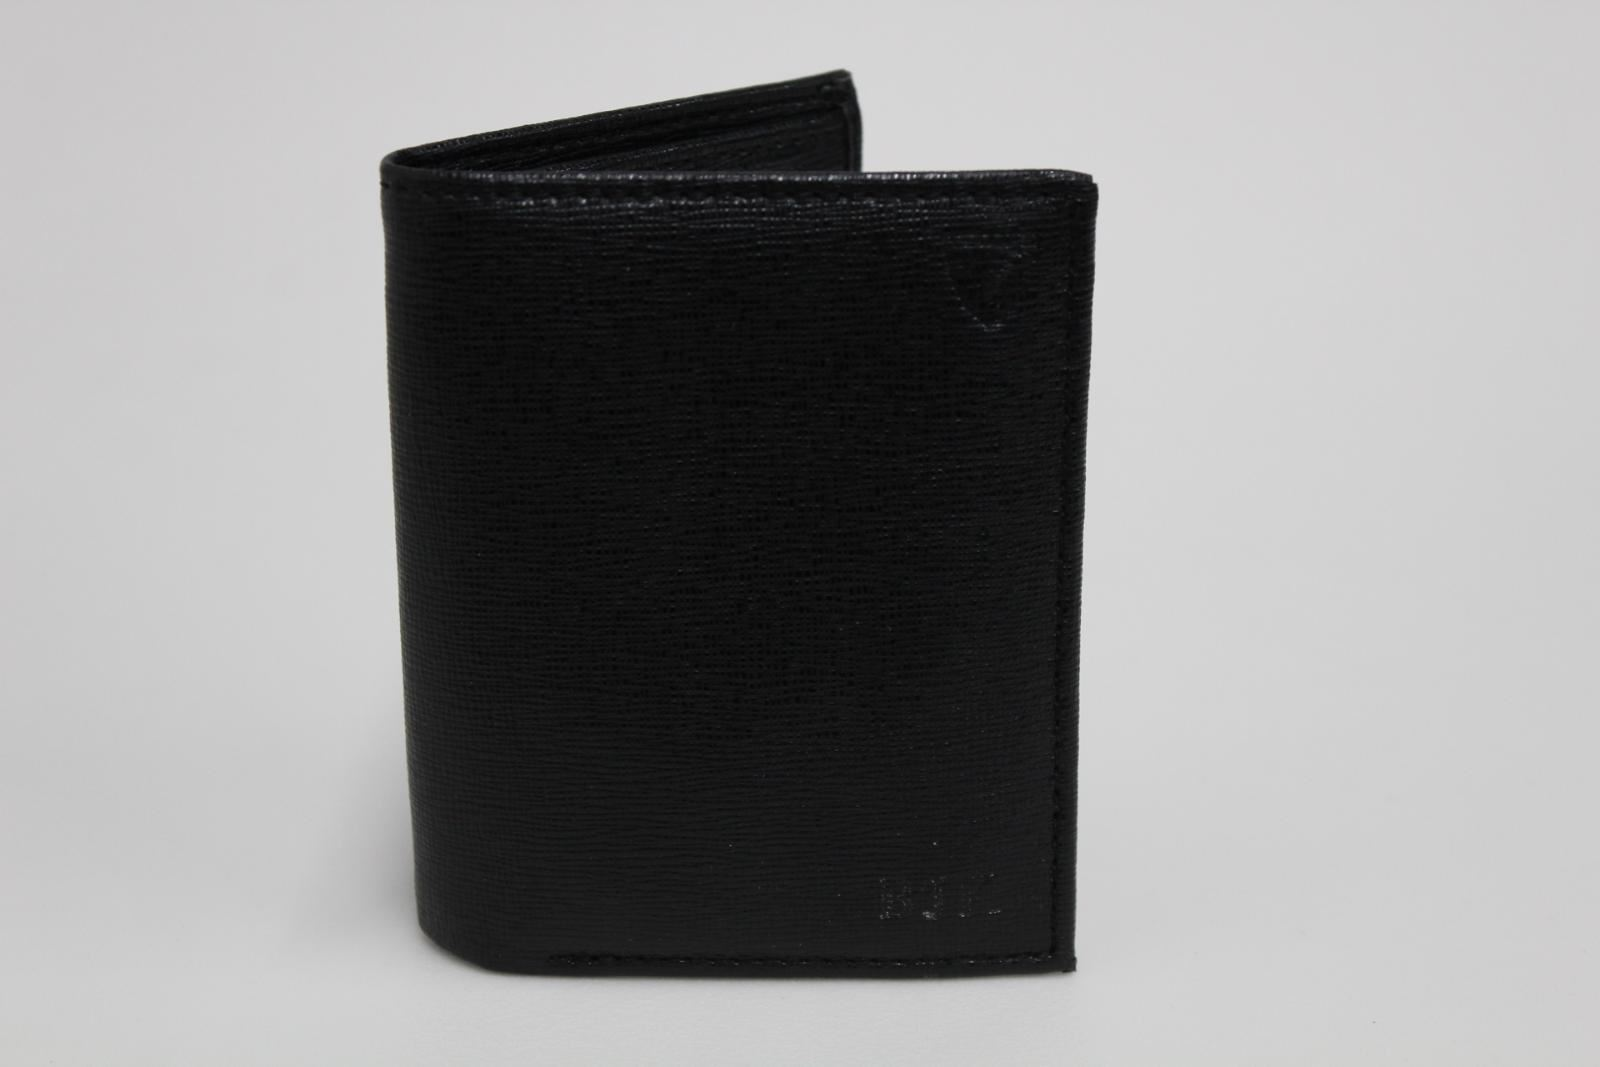 ASPINAL-OF-LONDON-Mens-Black-Saffiano-Leather-6-Slot-amp-Note-BJK-Initial-Wallet